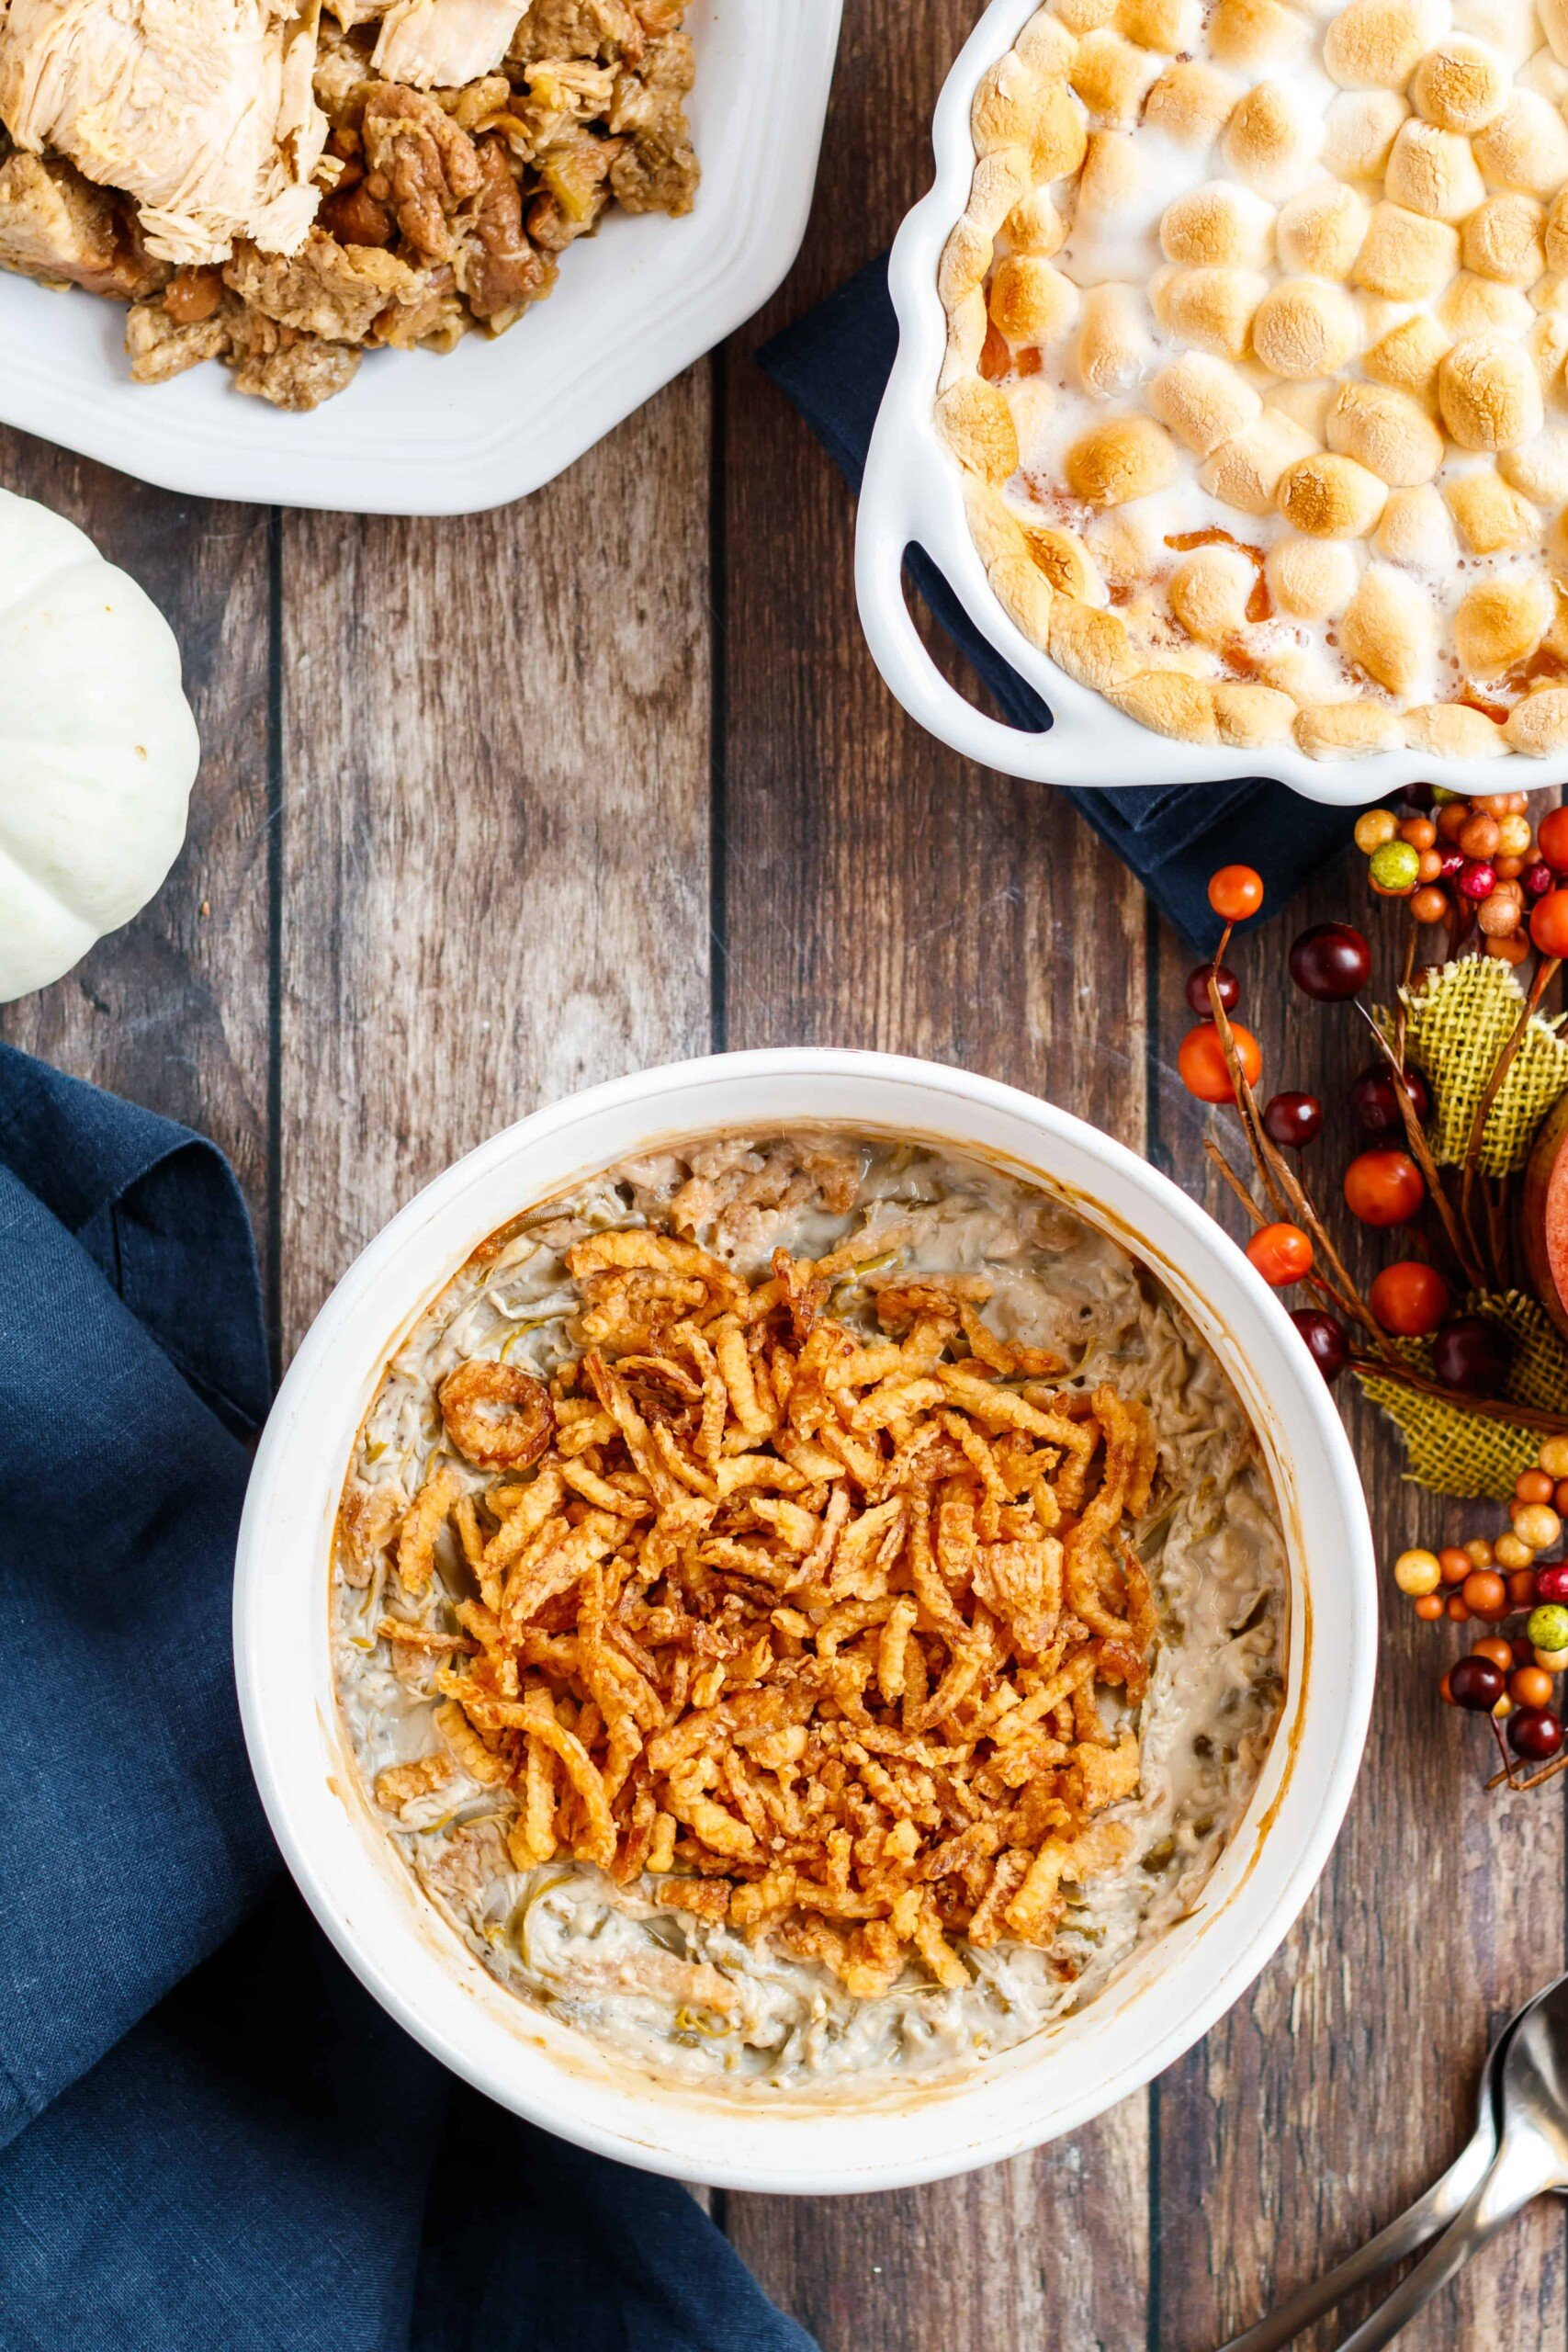 Sreving bowl with green bean casserole and French's crispy fried onions.